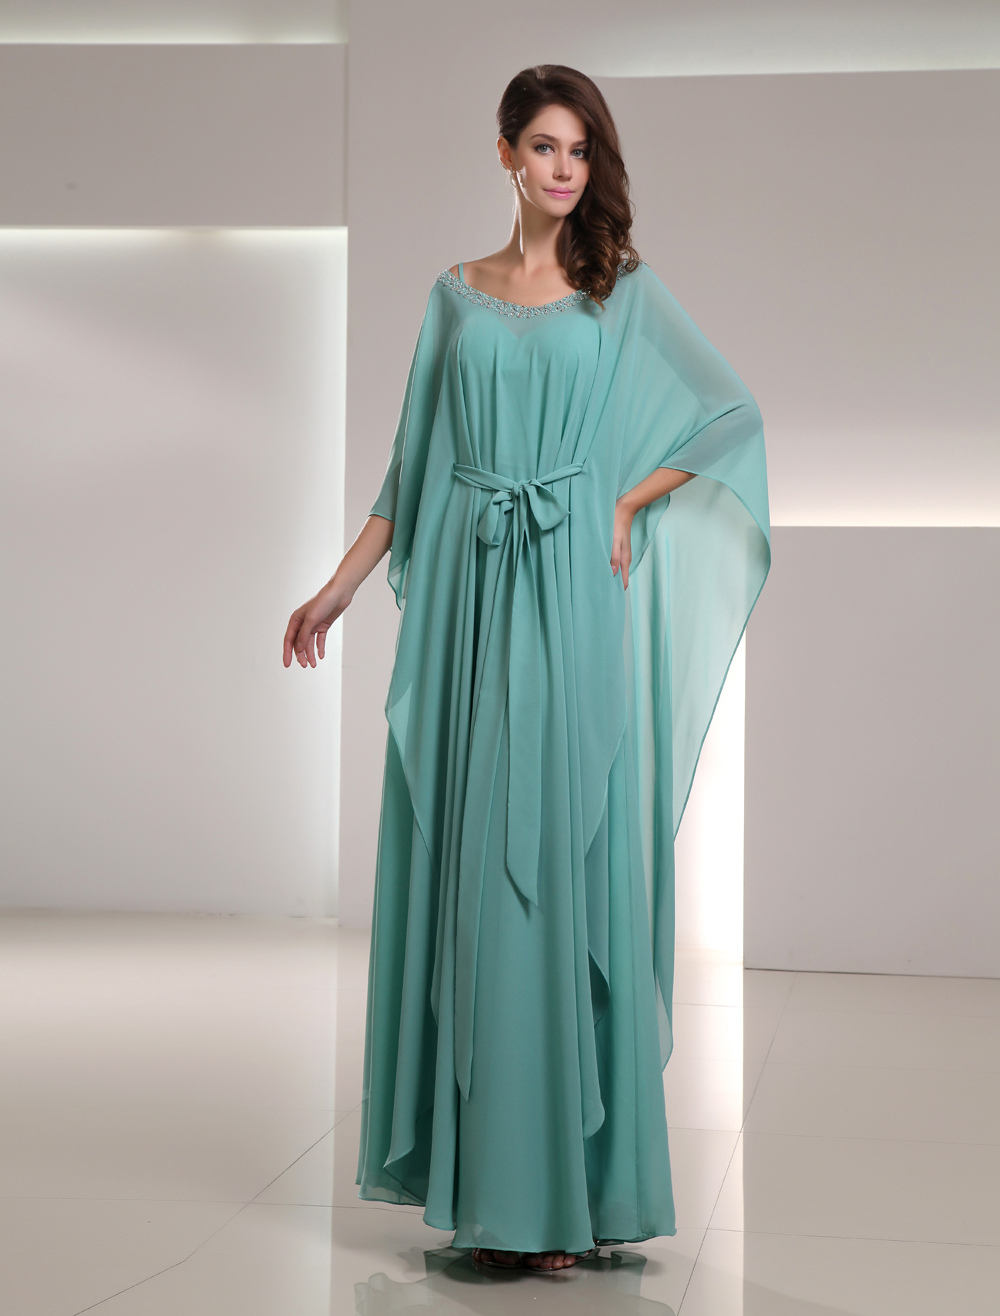 Buy Chiffon Mother Of The Bride Dress 2 Piece Mint Green Beading Floor Length Wedding Party Dress for $118.99 in Milanoo store